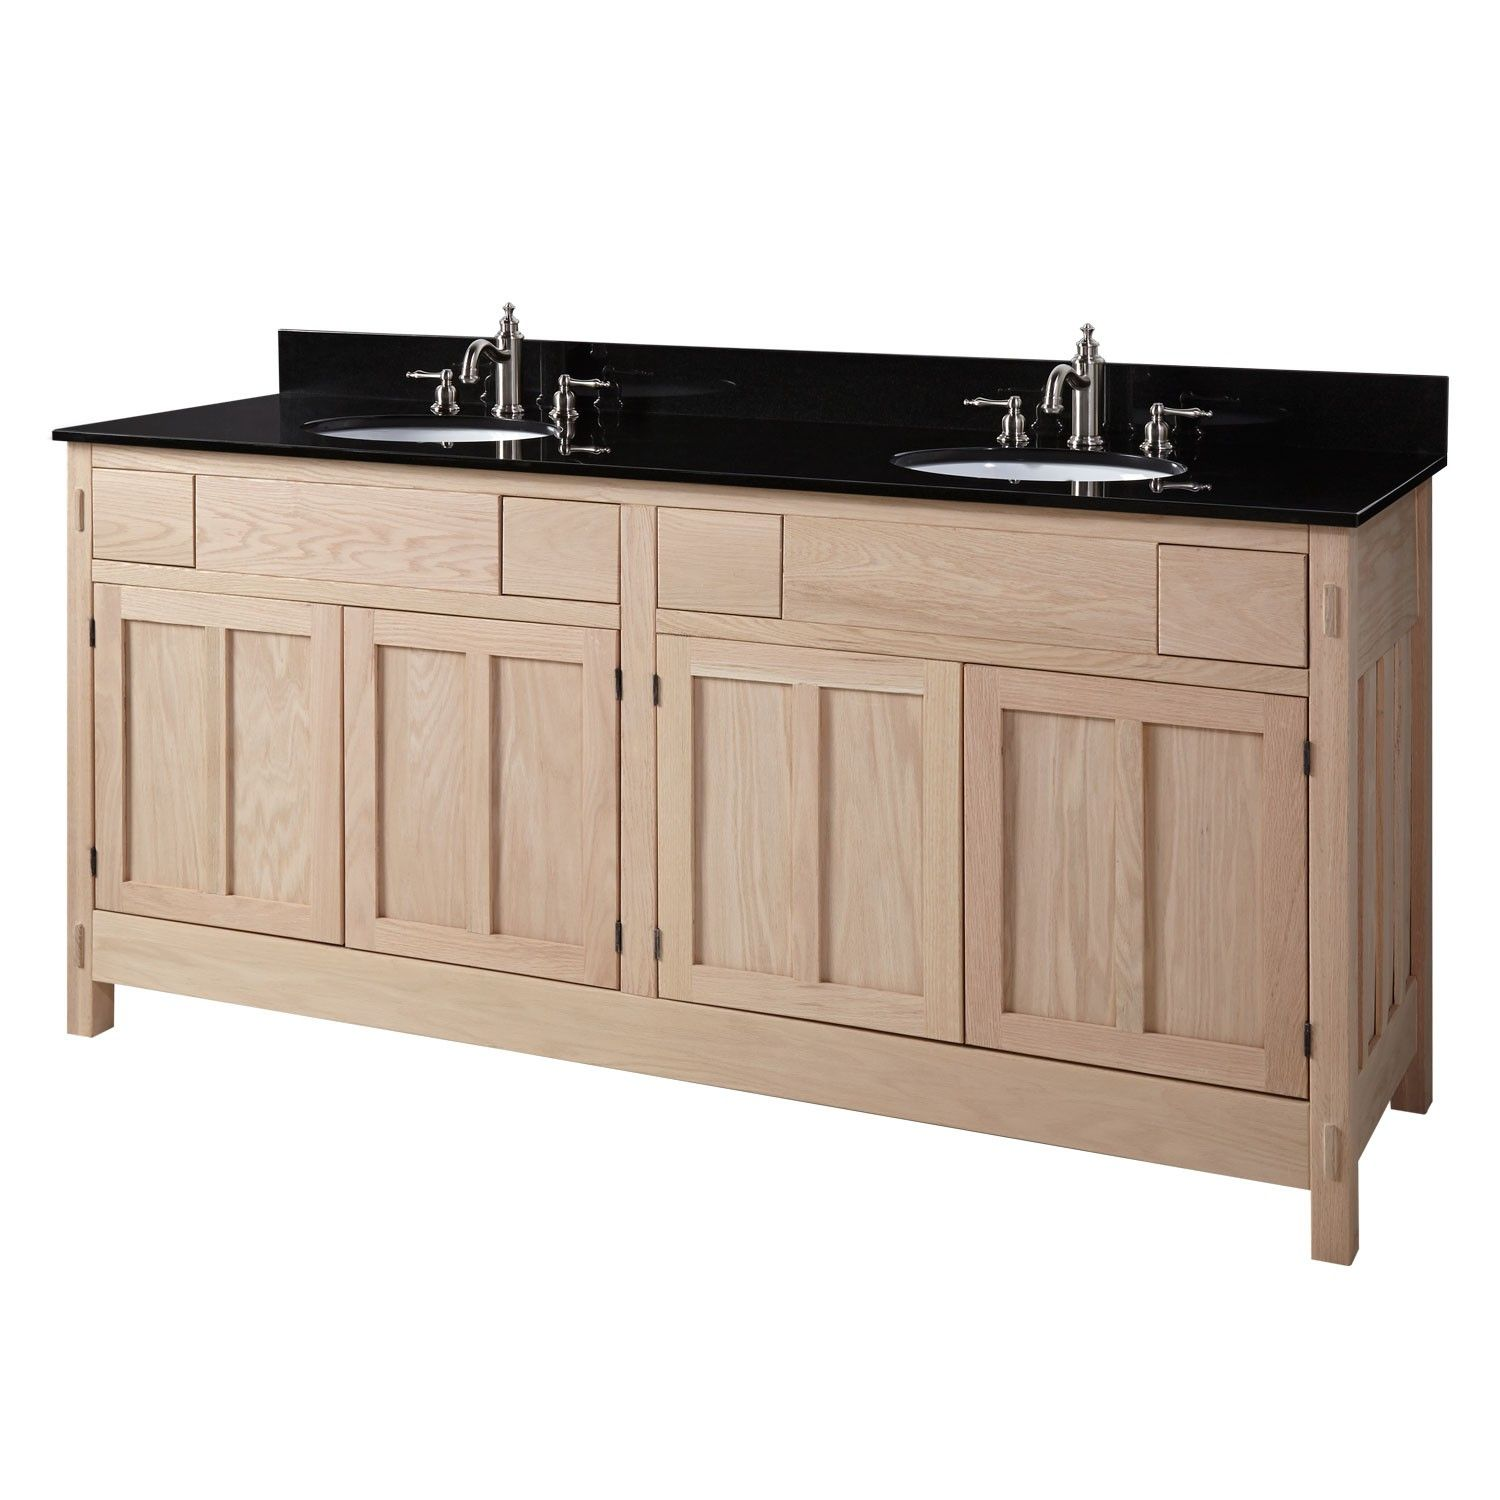 "72"" Unfinished Mission Hardwood Double Vanity for Undermount Sinks - 4 Top Drawers - Bathroom Vanities - Bathroom. This is the one. From www.signaturehardware.com"